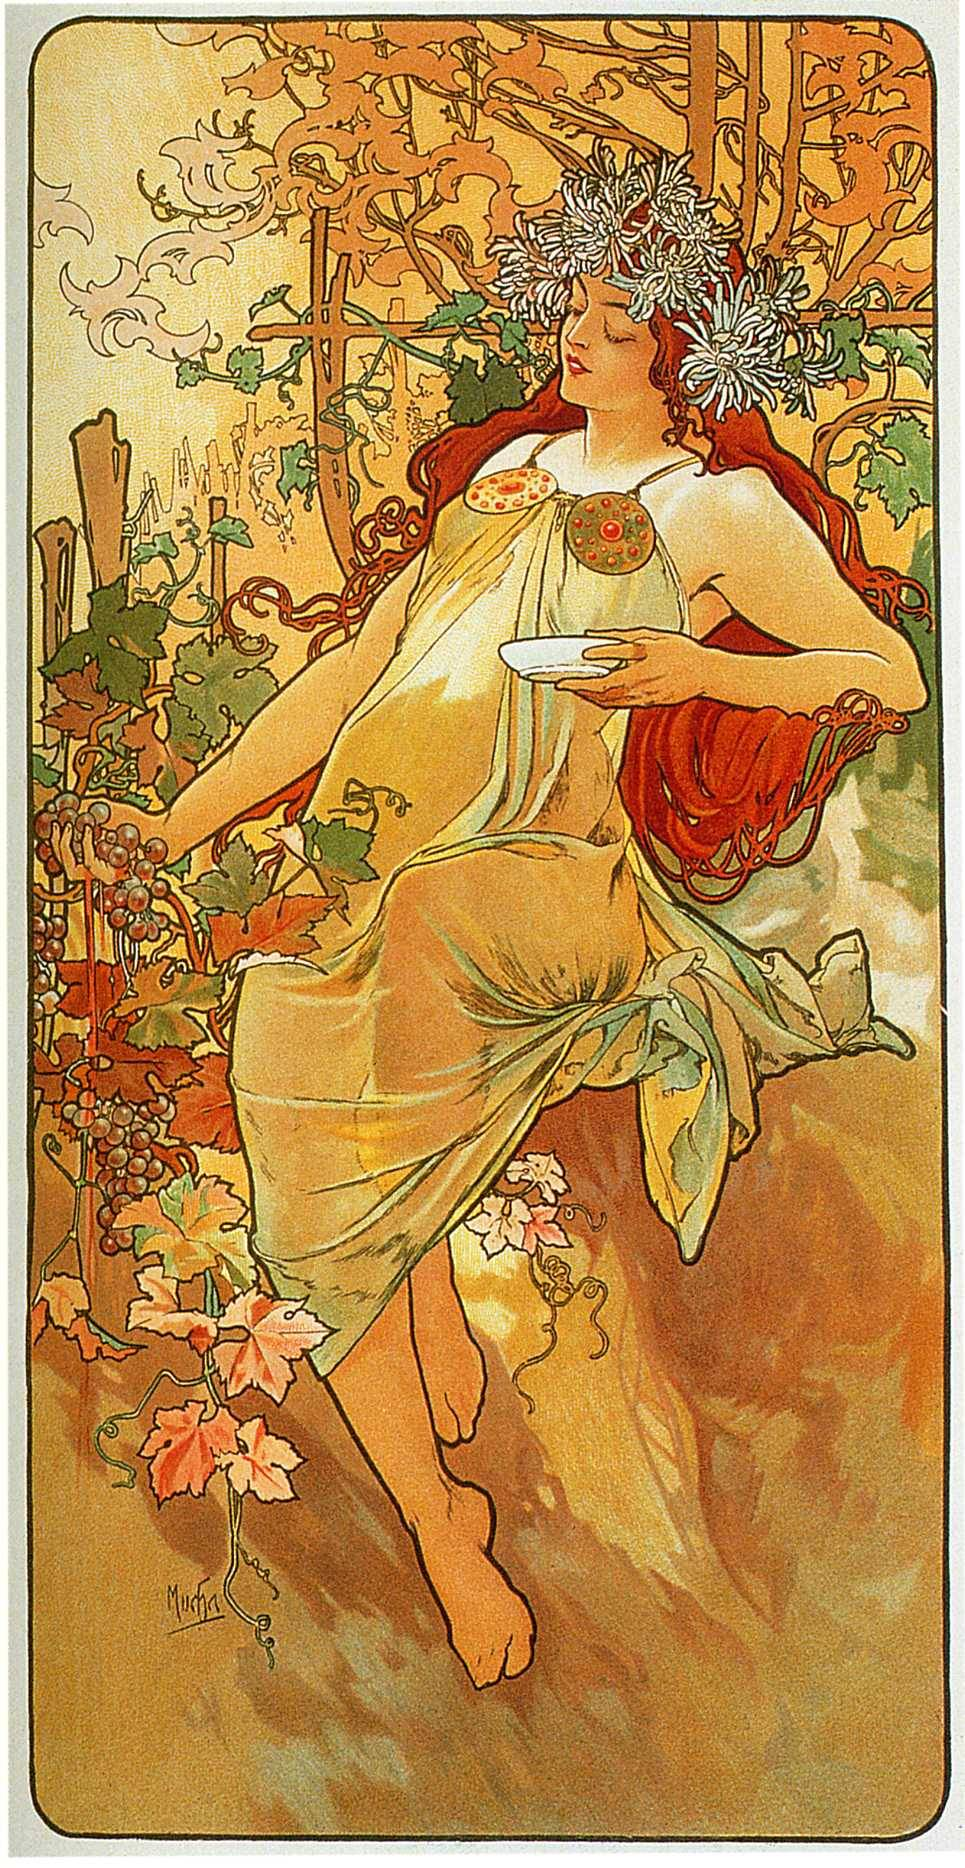 The Autumn (1896) by Mucha